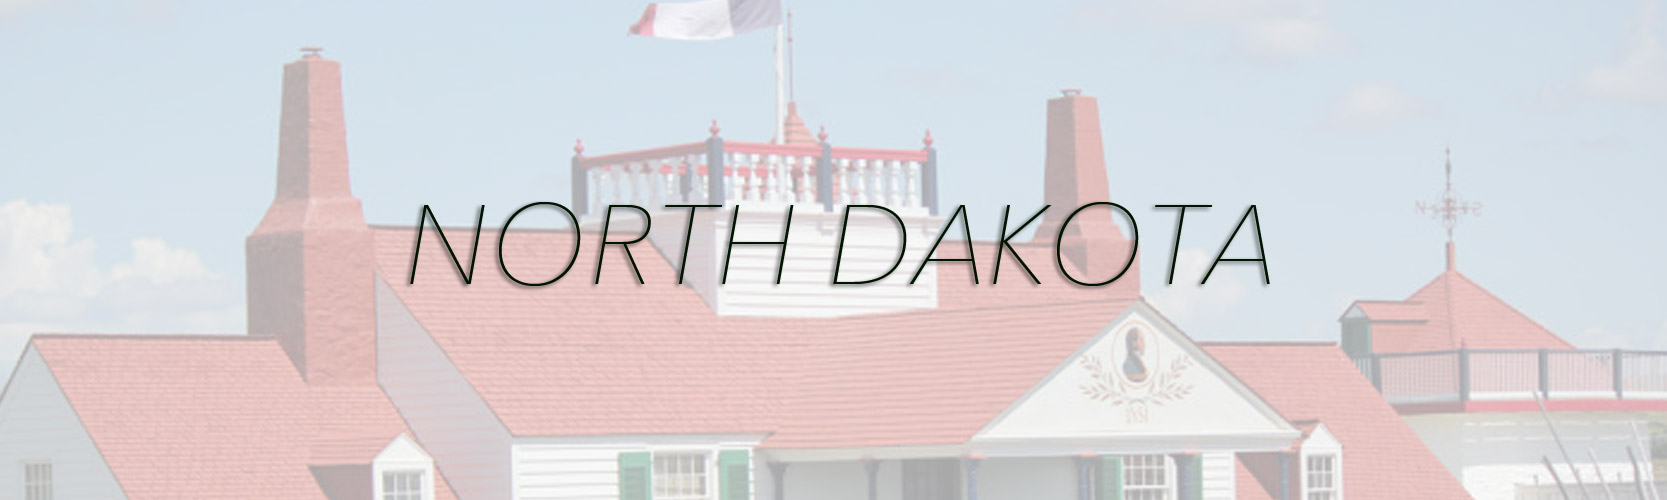 Shipping Futons, Sofa Beds, and Other Futon Shop products to North Dakota